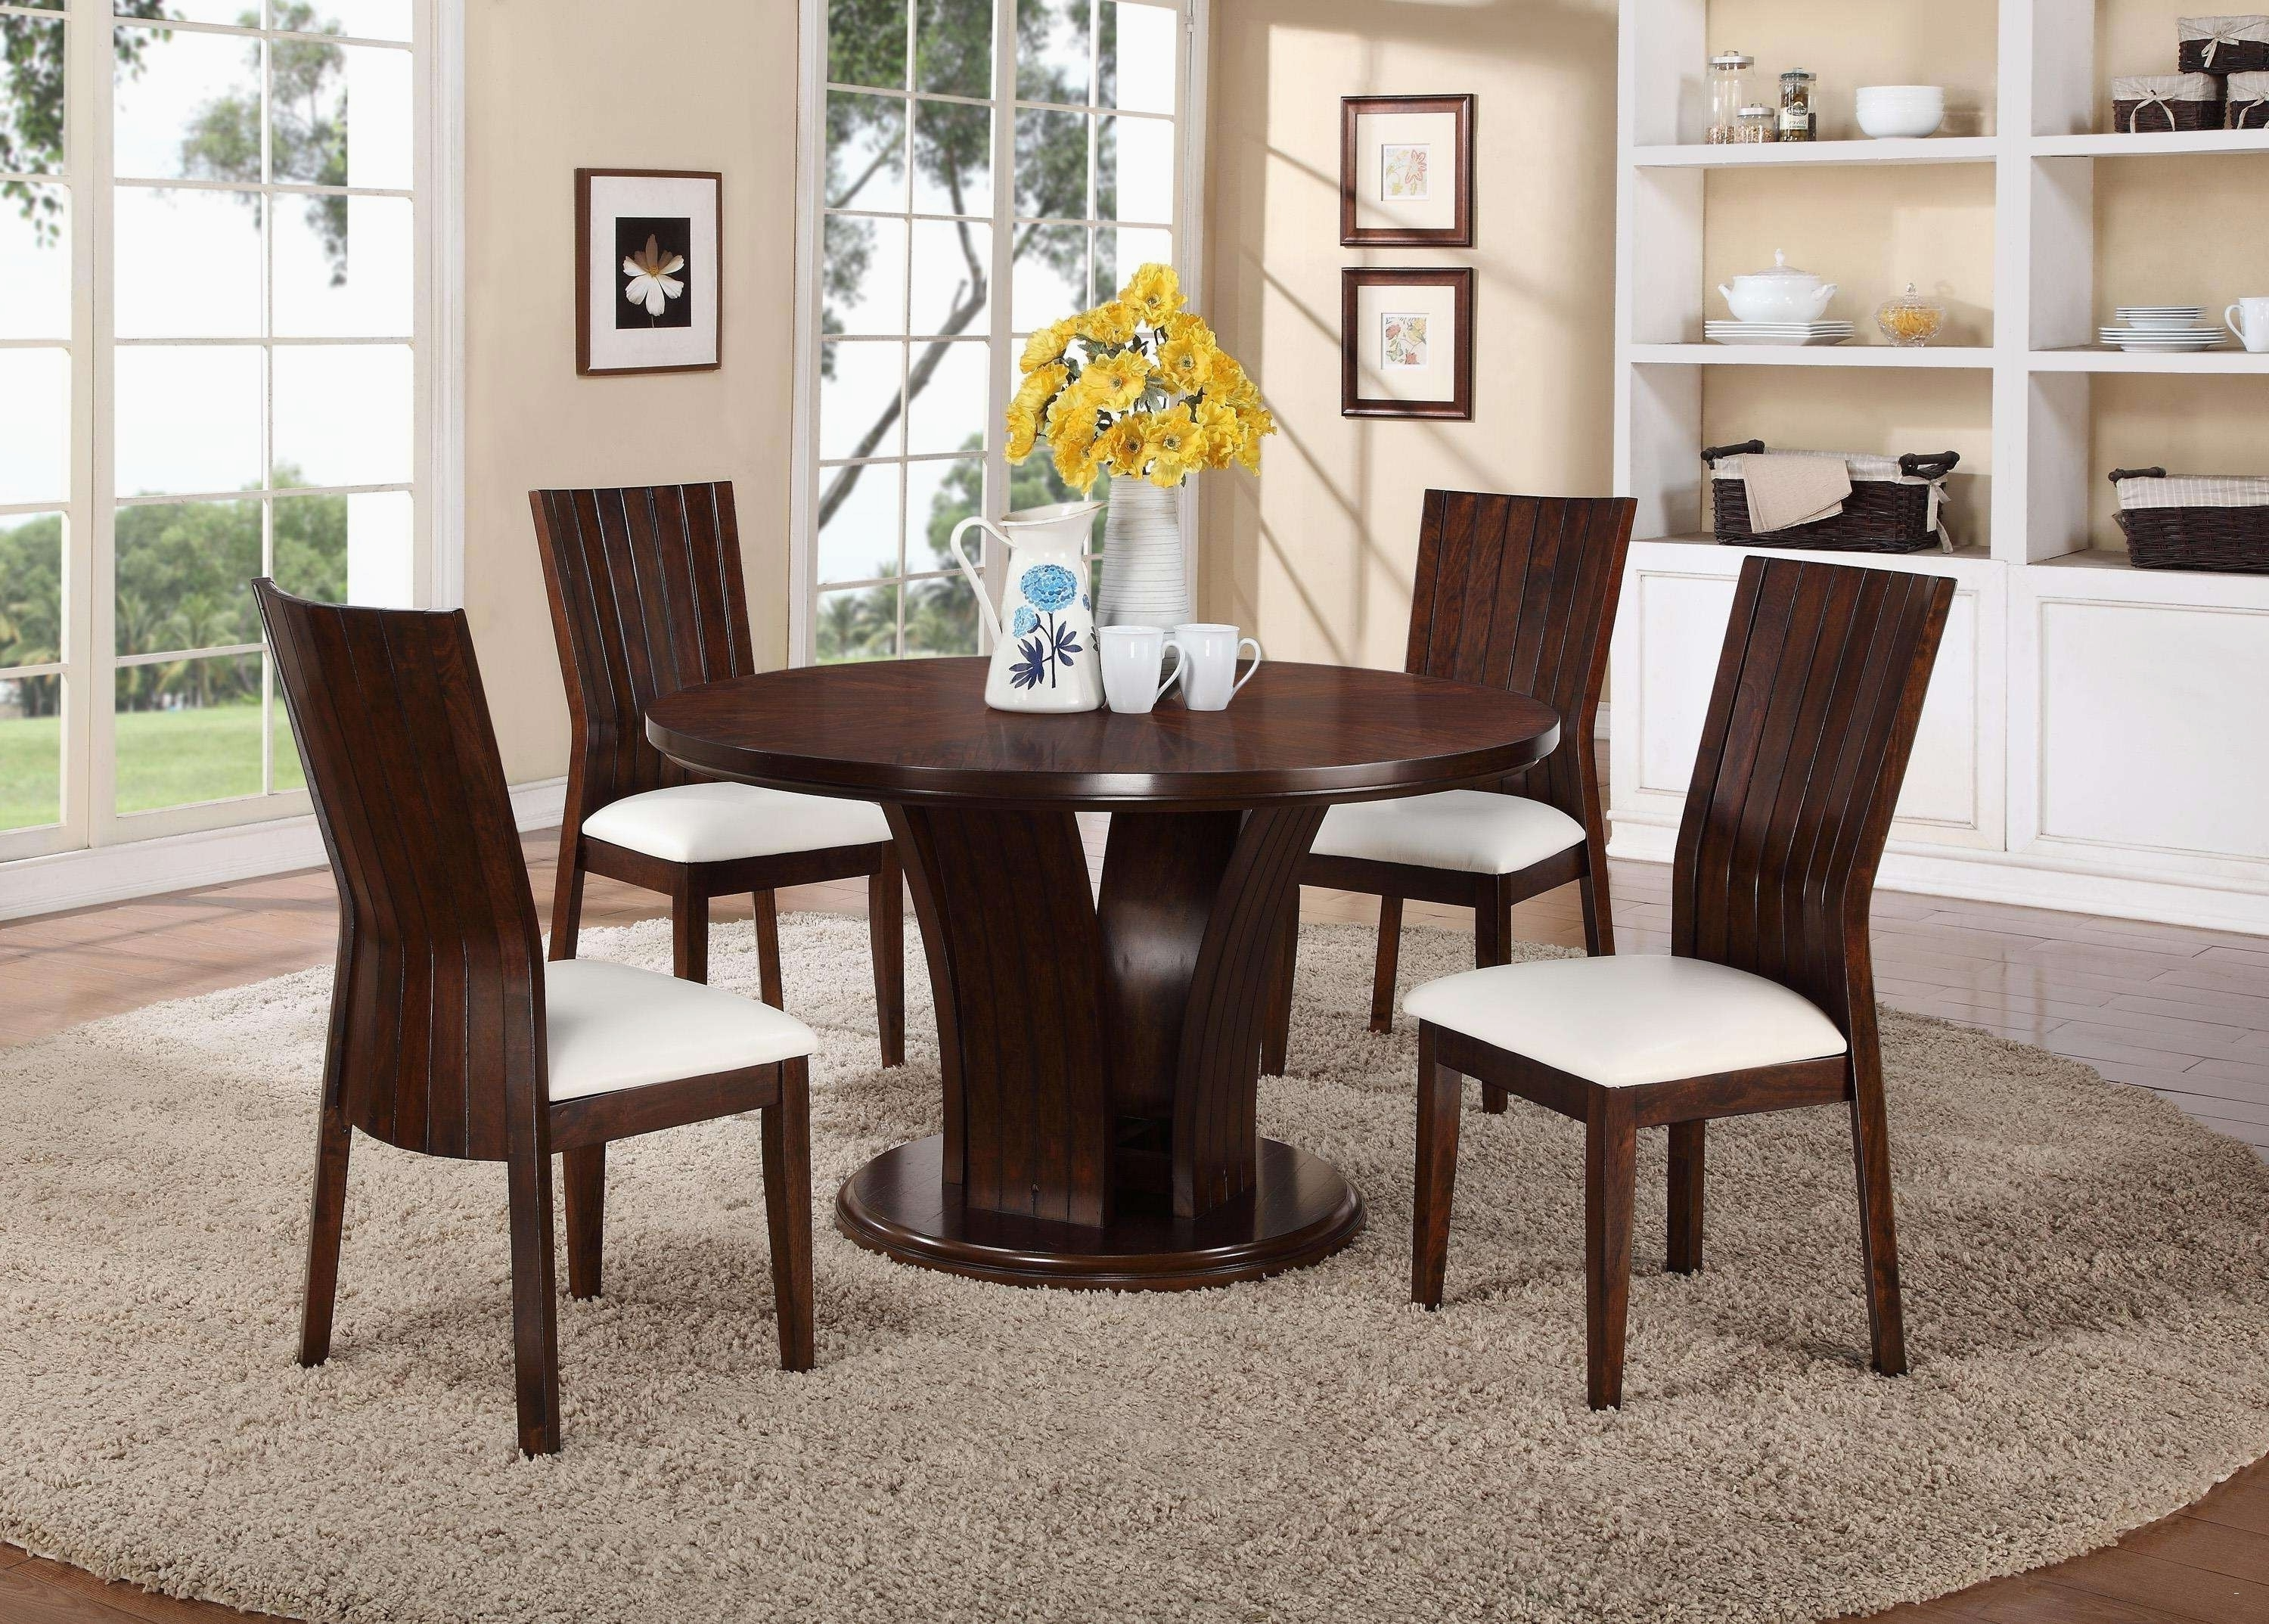 Preferred Stylish Dining Chairs For Stylish Dining Table Unique Simple Wood Dining Room Chairs New 6 (Gallery 10 of 25)